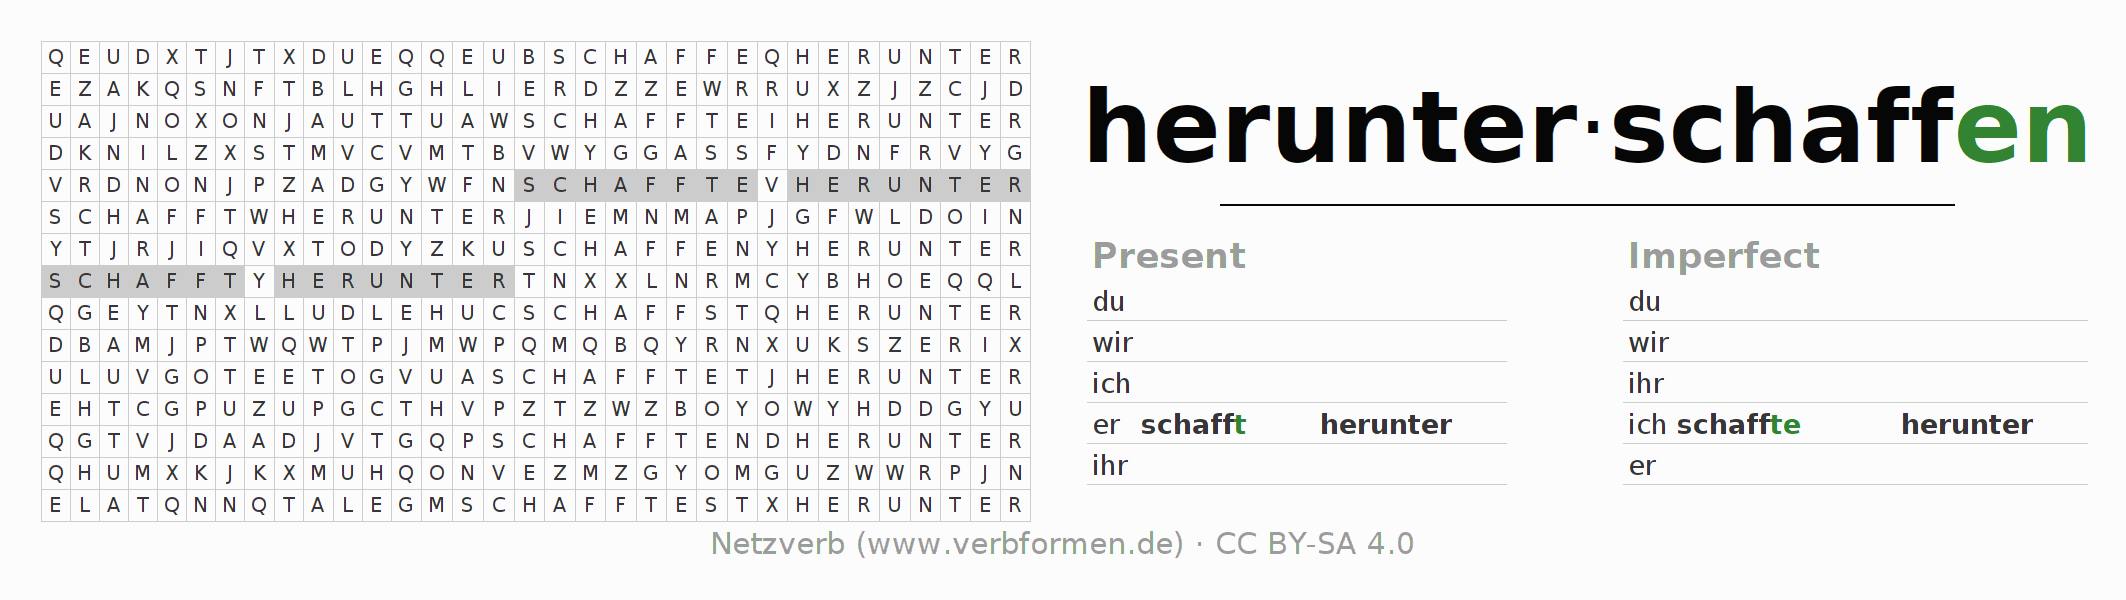 Word search puzzle for the conjugation of the verb herunterschaffen